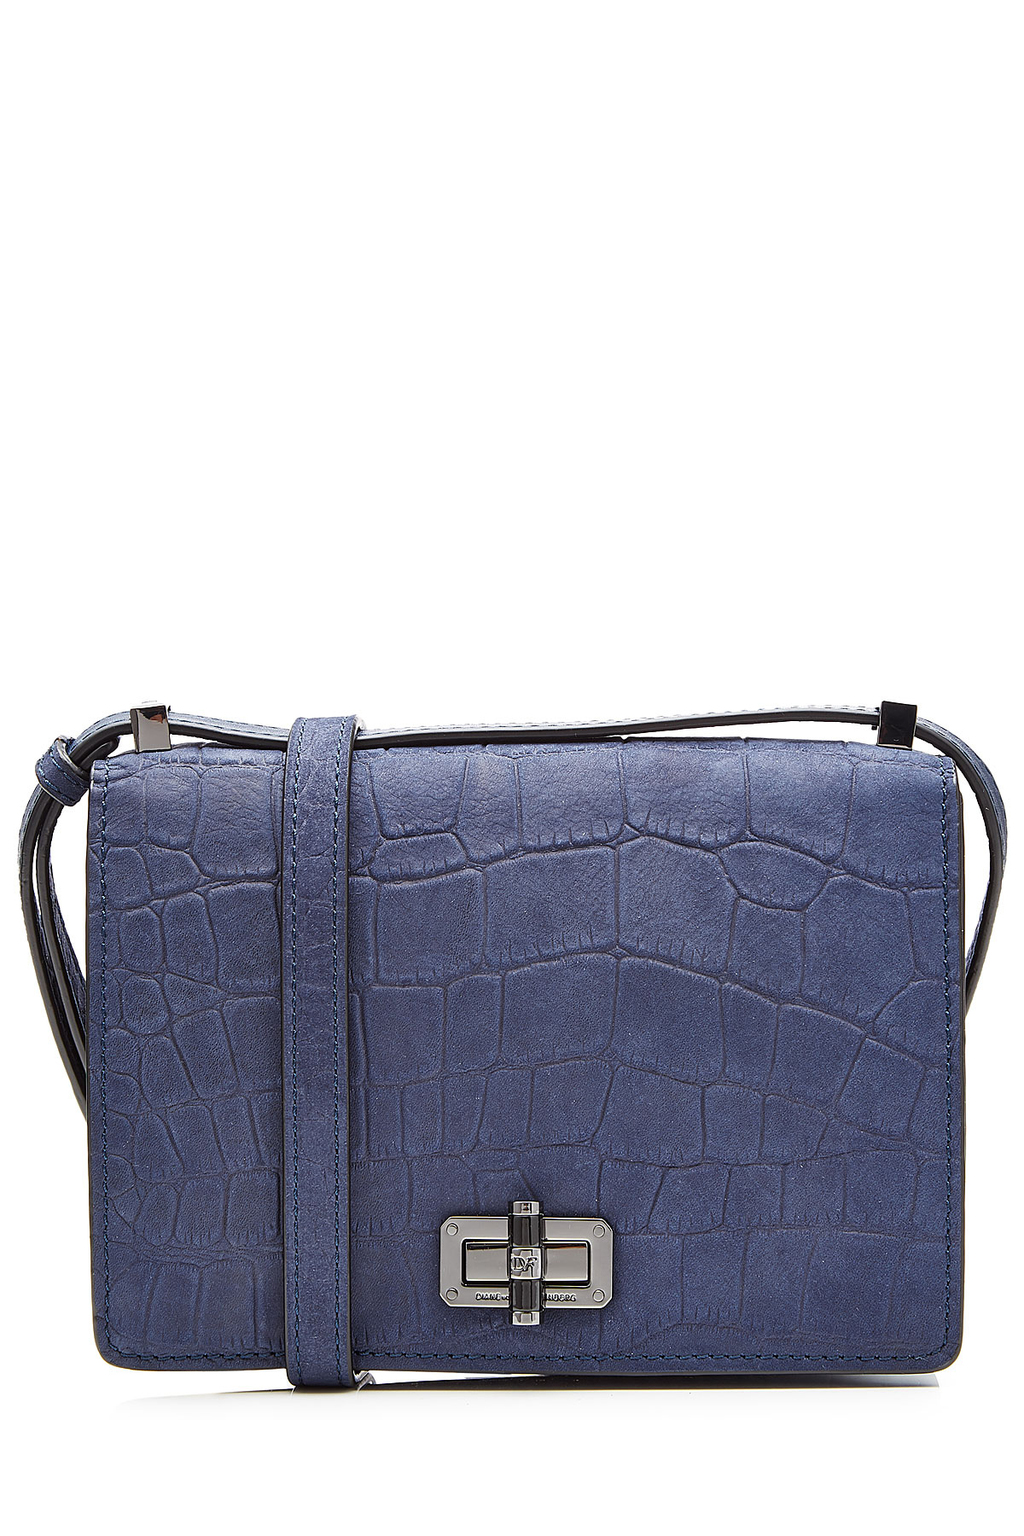 Embossed Leather Shoulder Bag Blue - predominant colour: denim; occasions: casual, creative work; type of pattern: standard; style: shoulder; length: across body/long; size: standard; material: leather; pattern: plain; finish: plain; secondary colour: pewter; season: a/w 2016; wardrobe: highlight